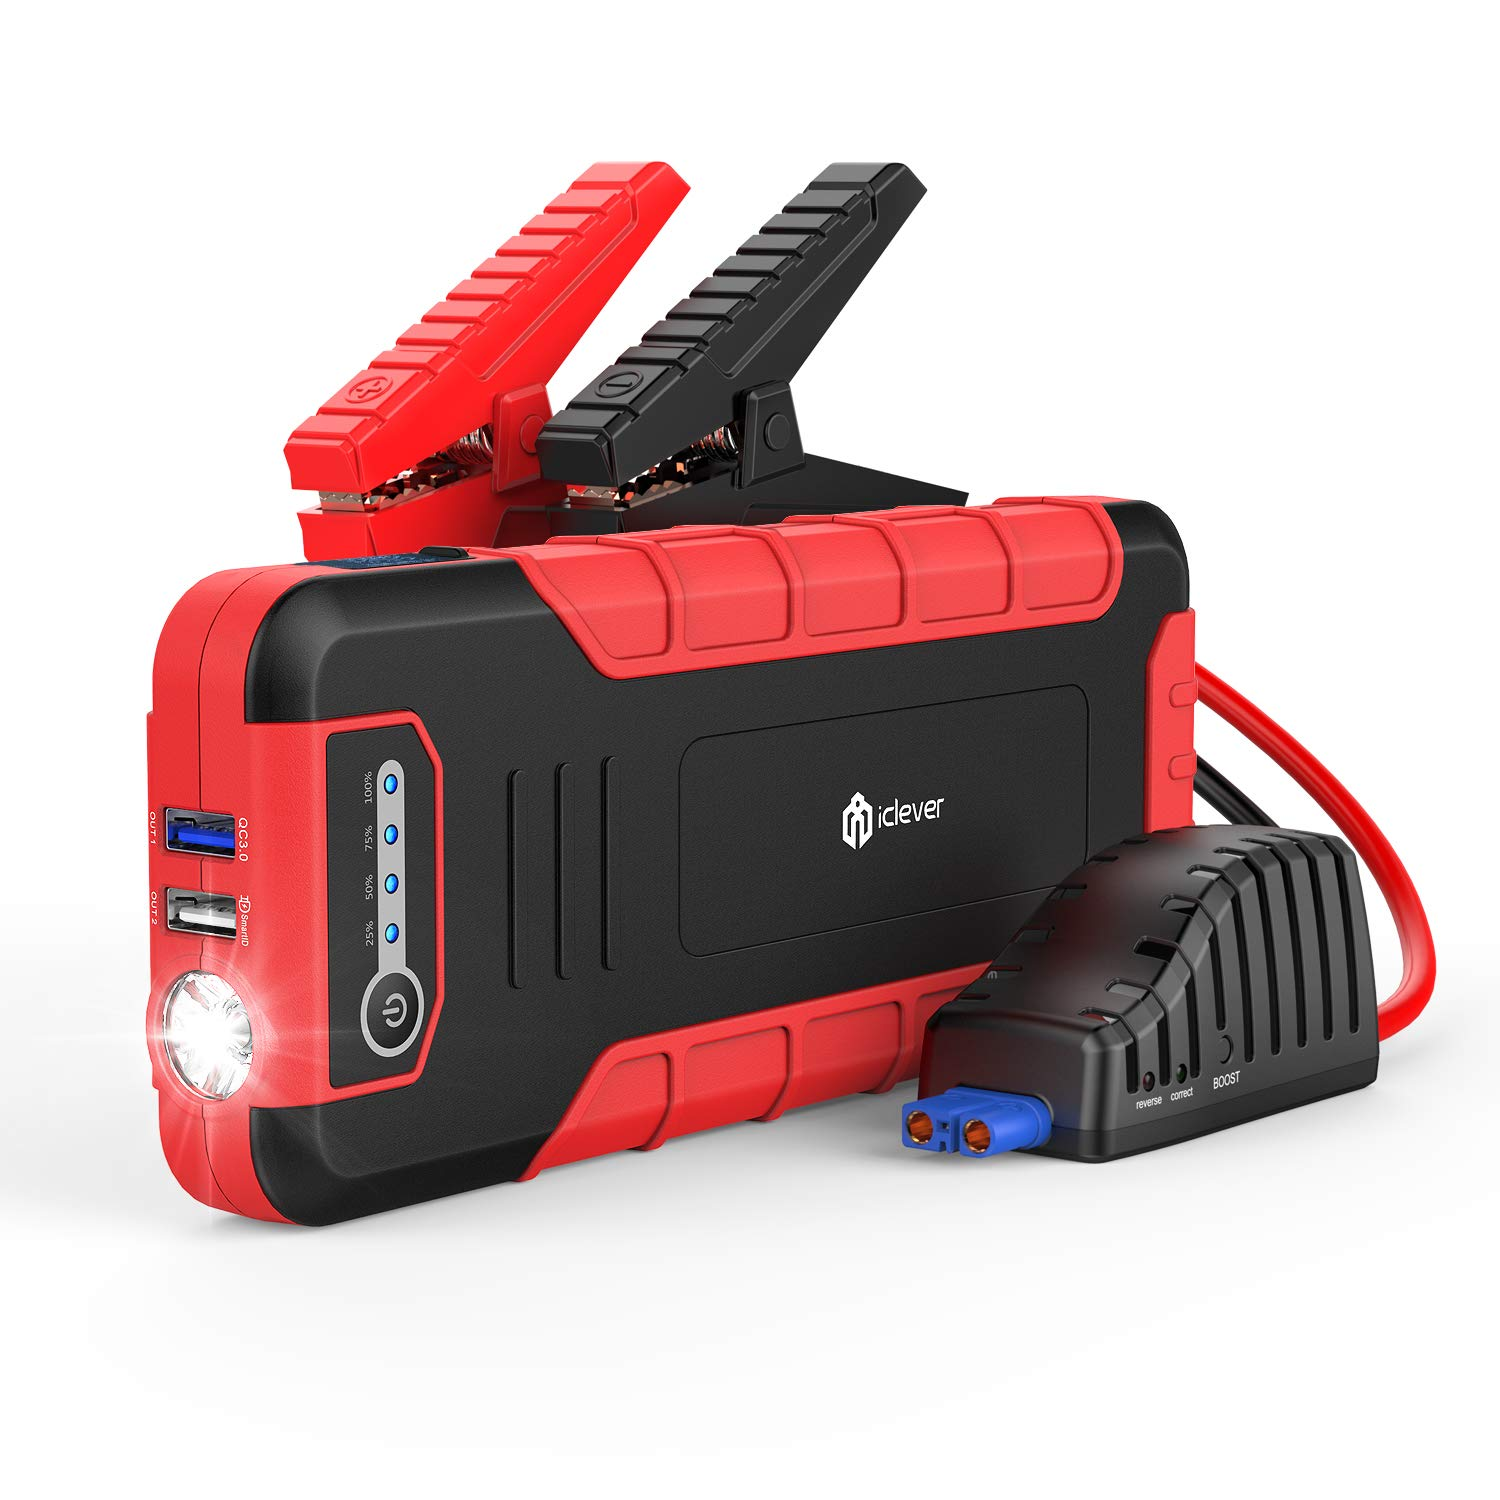 iClever Jump Starter 1300A Peak 18000mah Car Jumper, 12V Auto Battery Jumper (up to 8L Gas or 6.5L Disel Engine), Portable Power Pack with Dual USB Port, 12V & 19V DC Outut and Flashlight